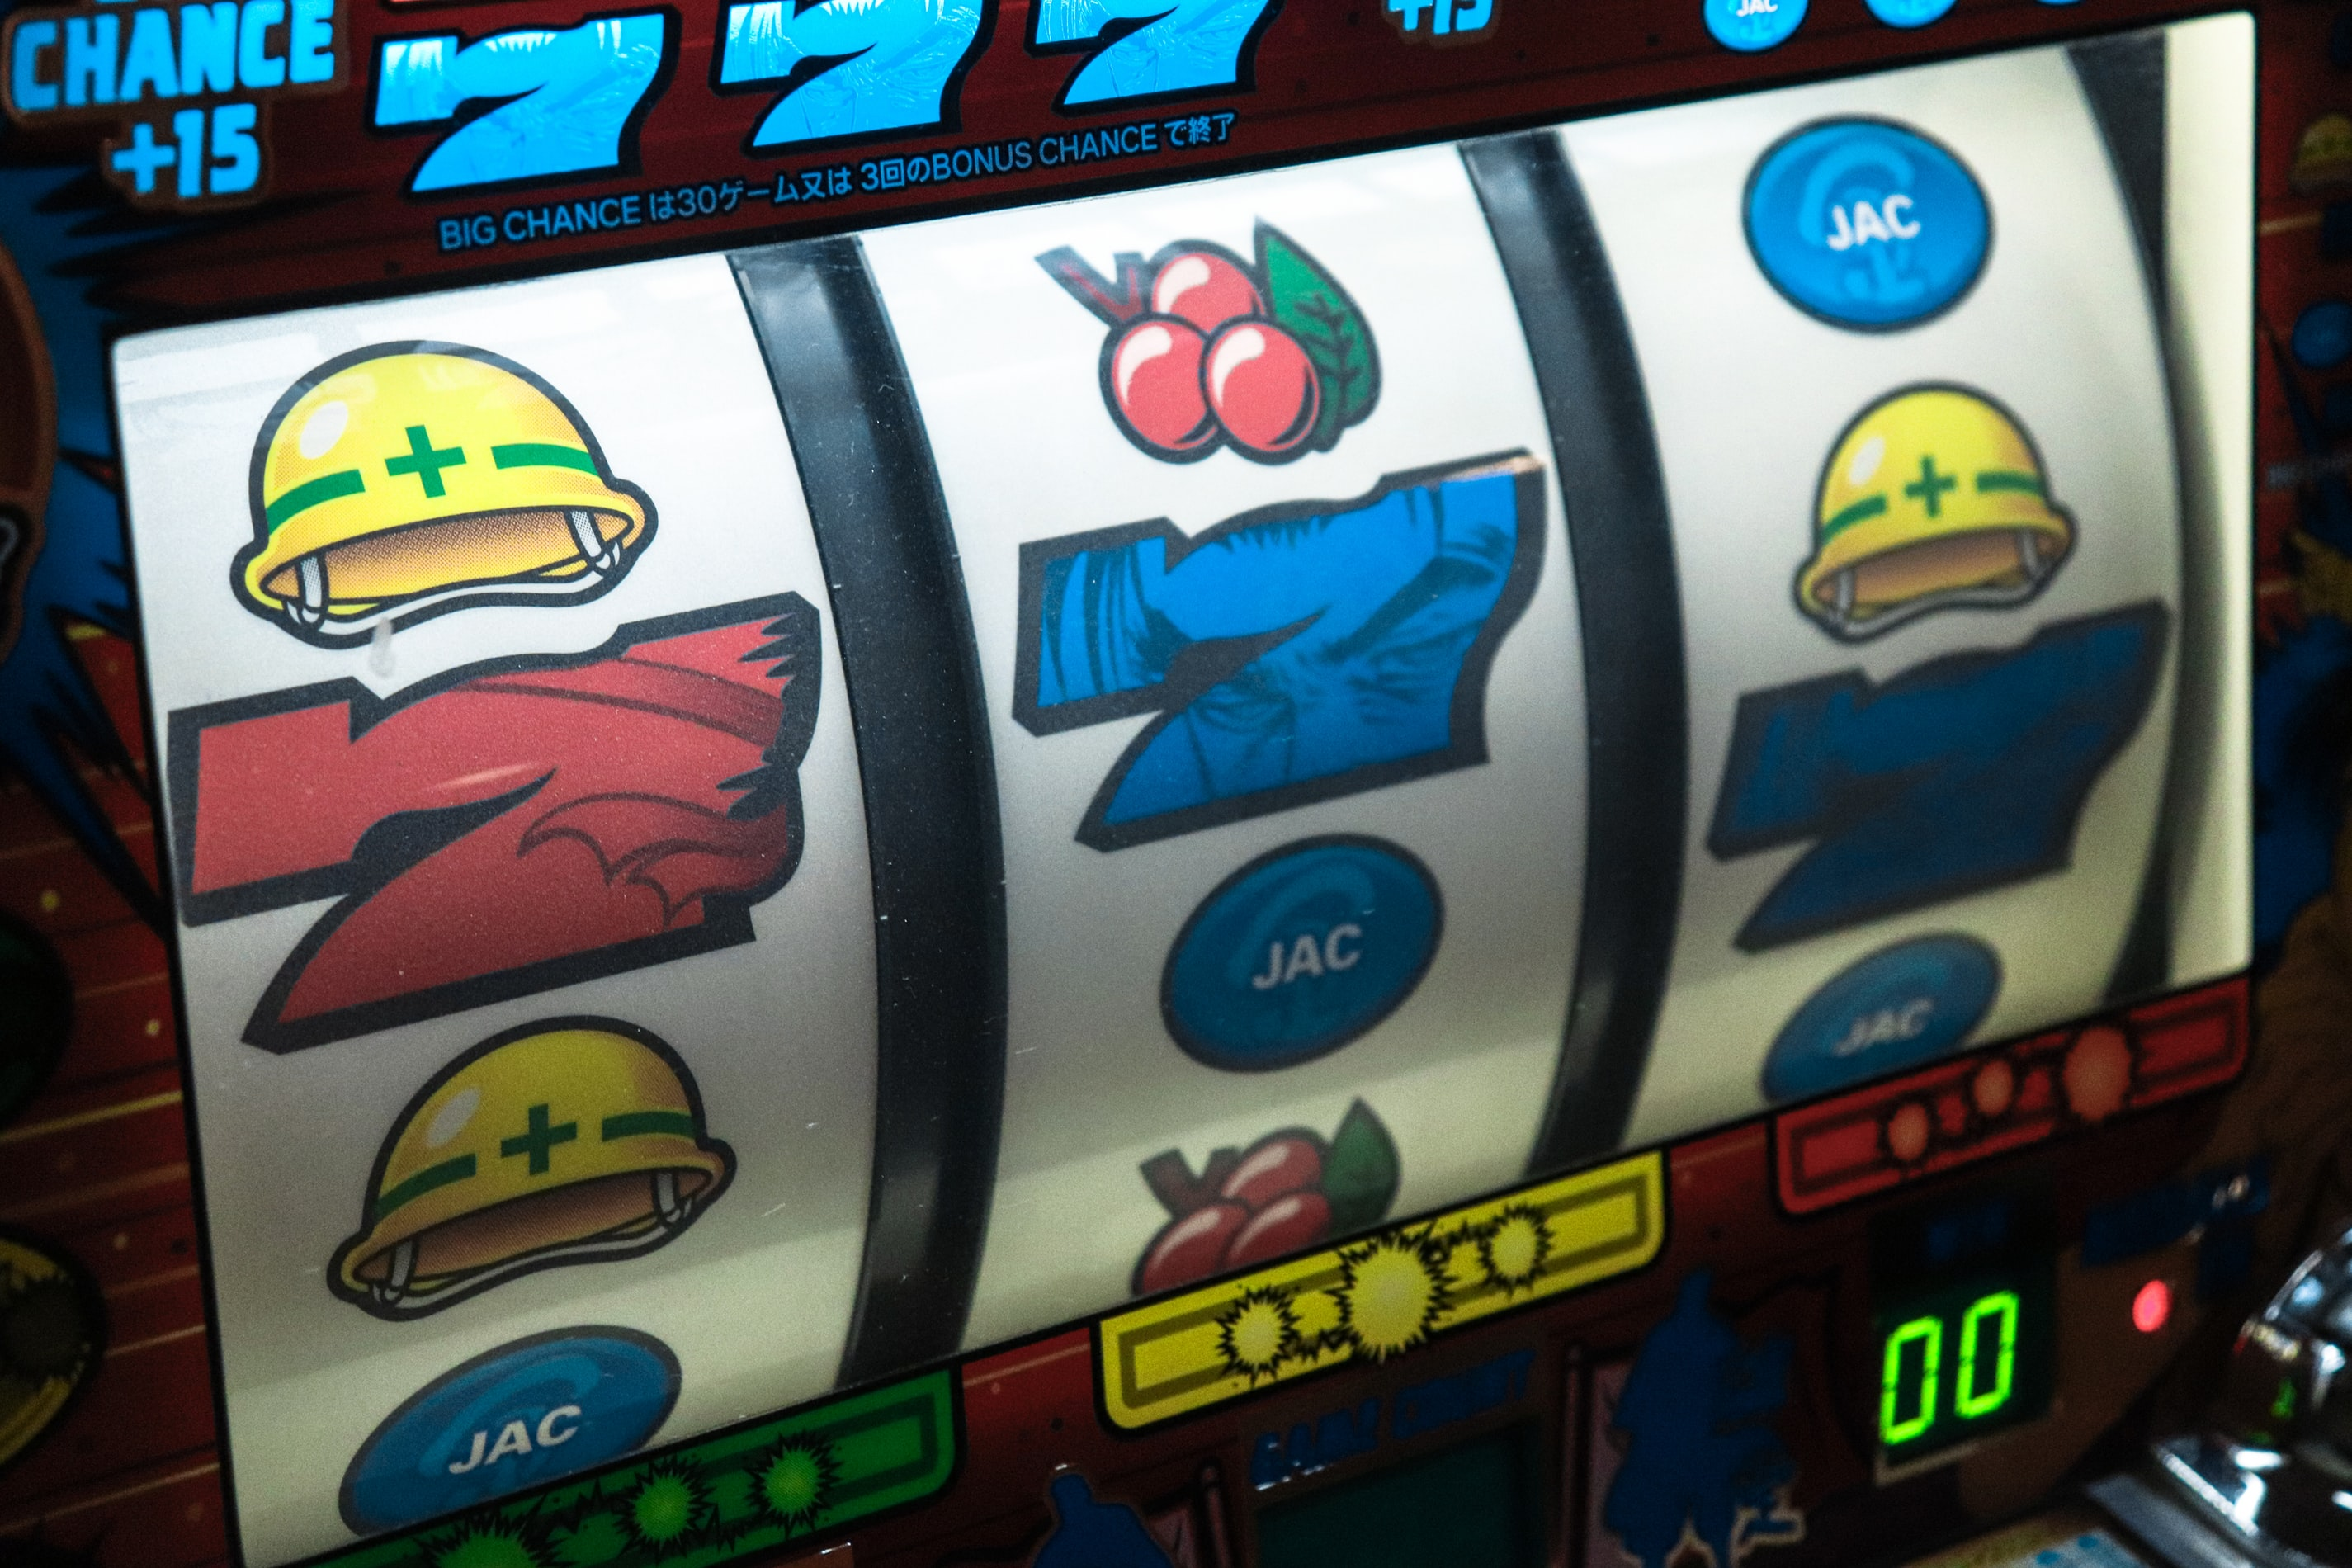 What are the maximum slot winnings I can withdraw weekly?